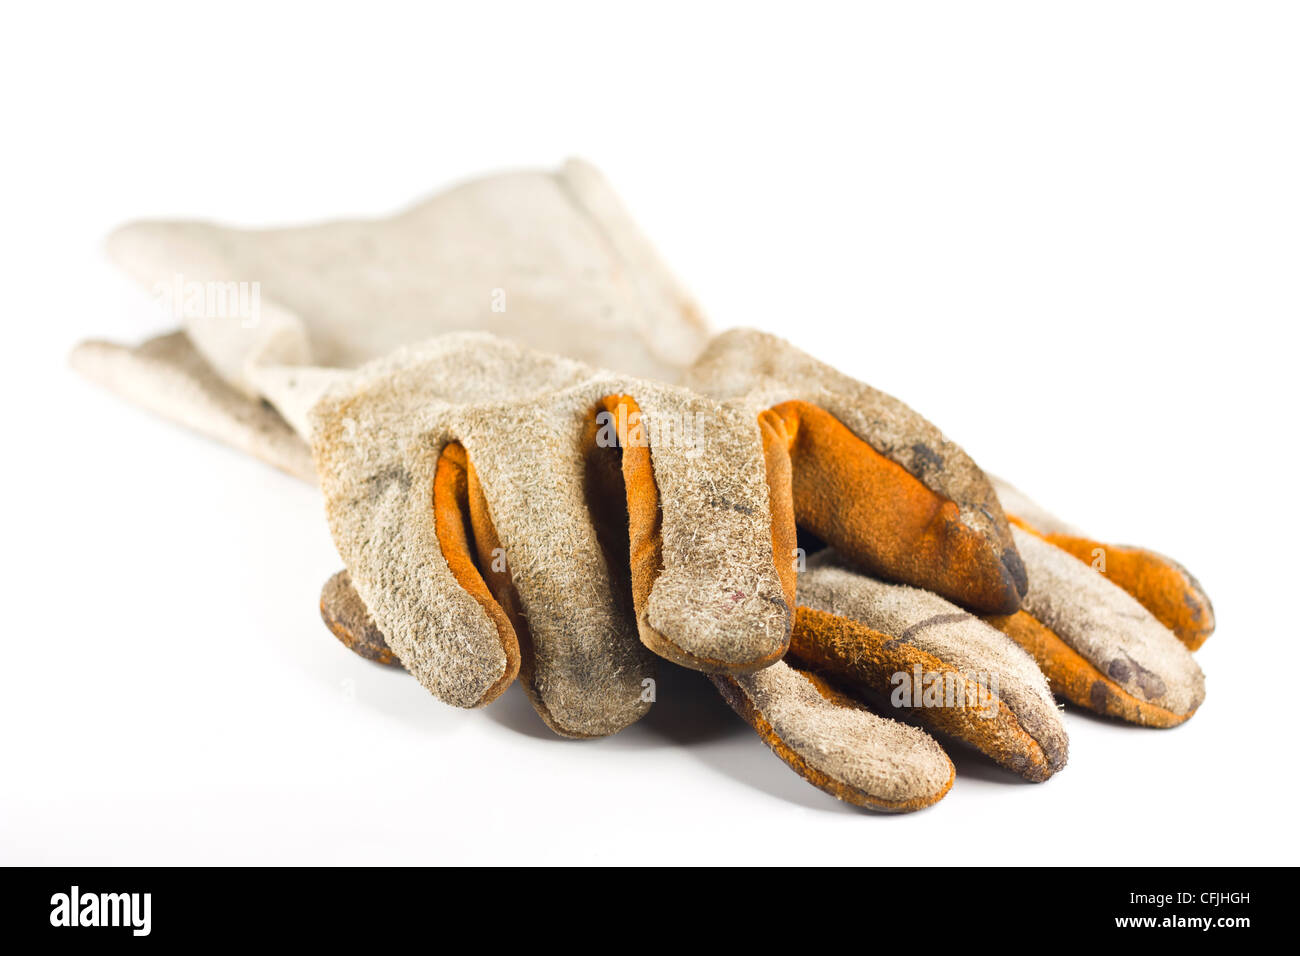 Dirty old leather gloves shallow focus isolated on white background - Stock Image